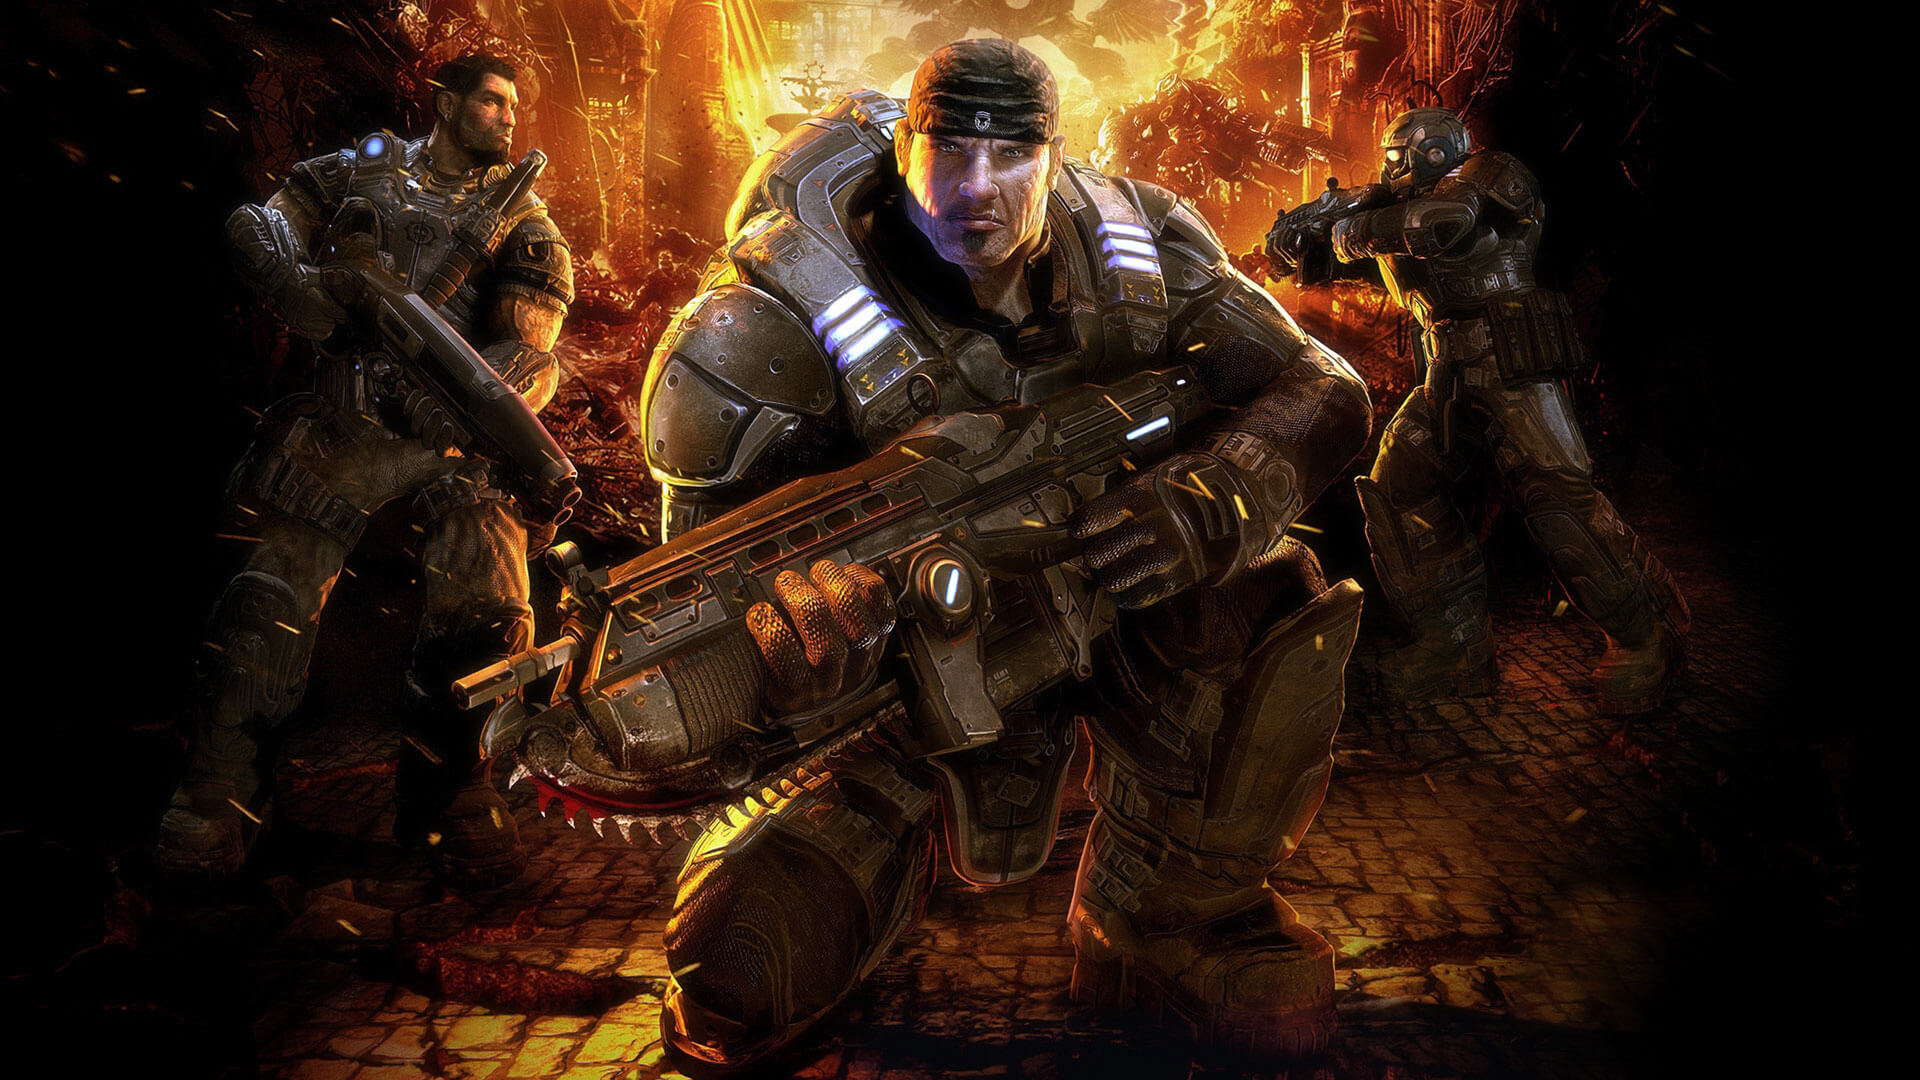 Killer Instinct Gears of War